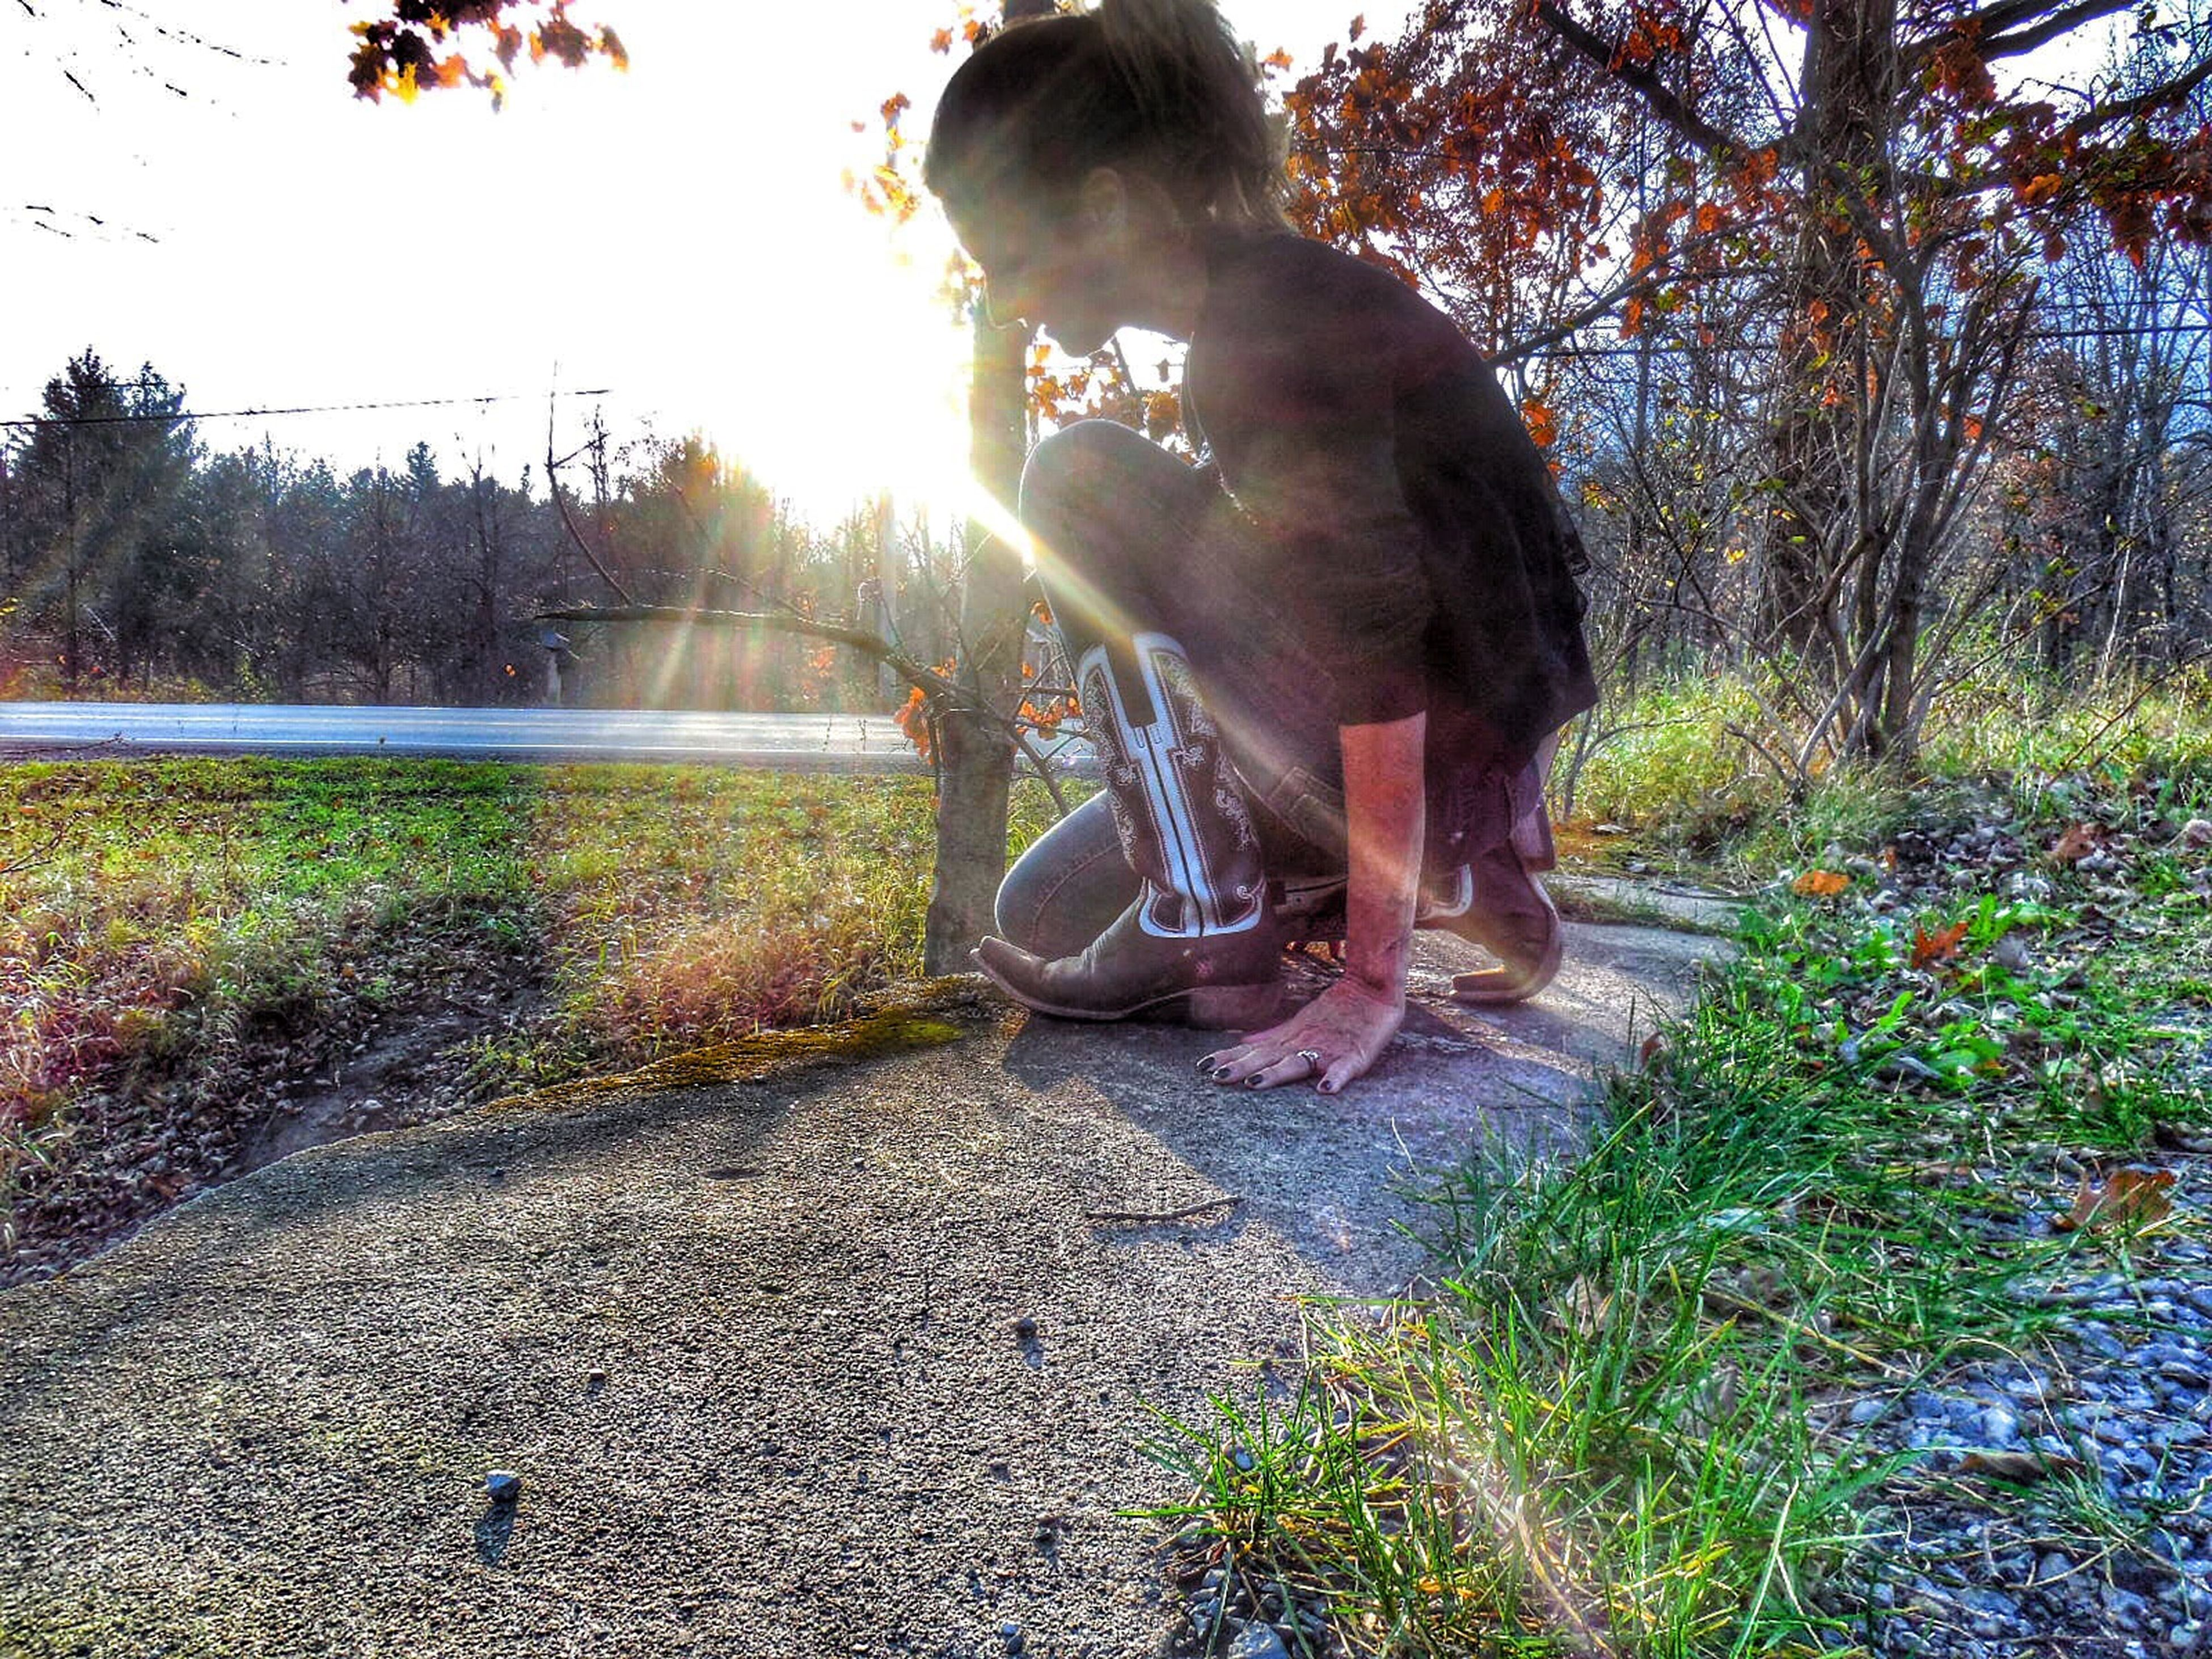 lifestyles, leisure activity, water, sunlight, sunbeam, tree, plant, person, sitting, casual clothing, young adult, nature, day, grass, sun, outdoors, young women, lens flare